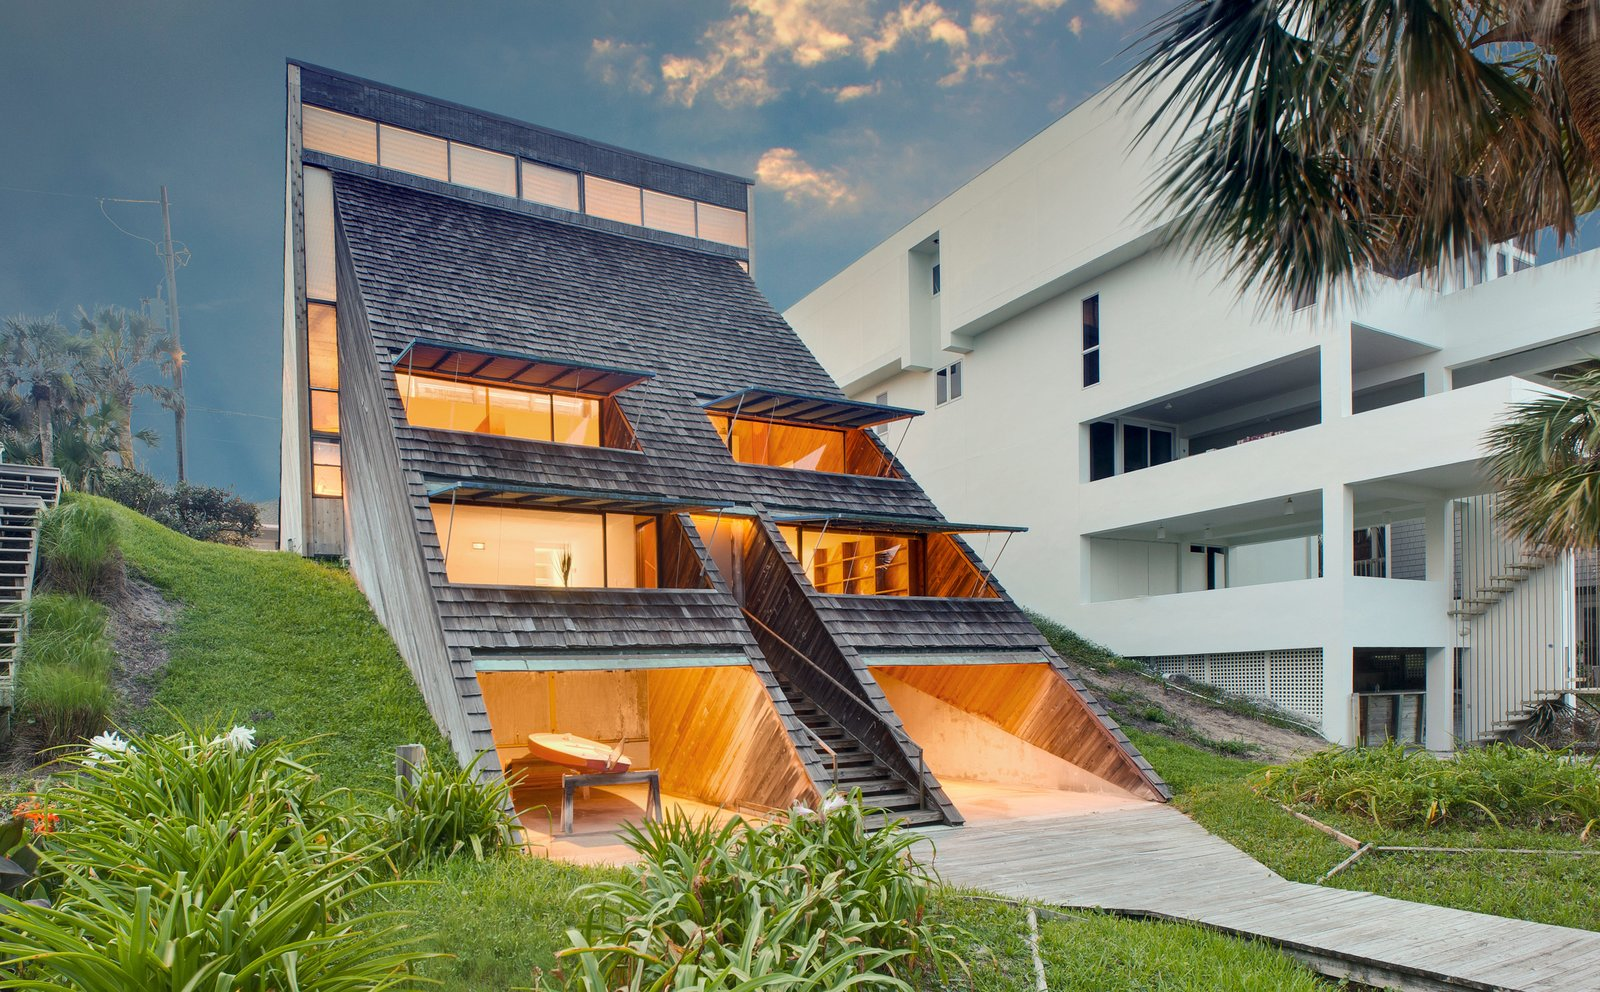 Outdoor and Back Yard  Photo 1 of 13 in A Renowned Florida Architect's Geometric Family Home Hits the Market For the First Time